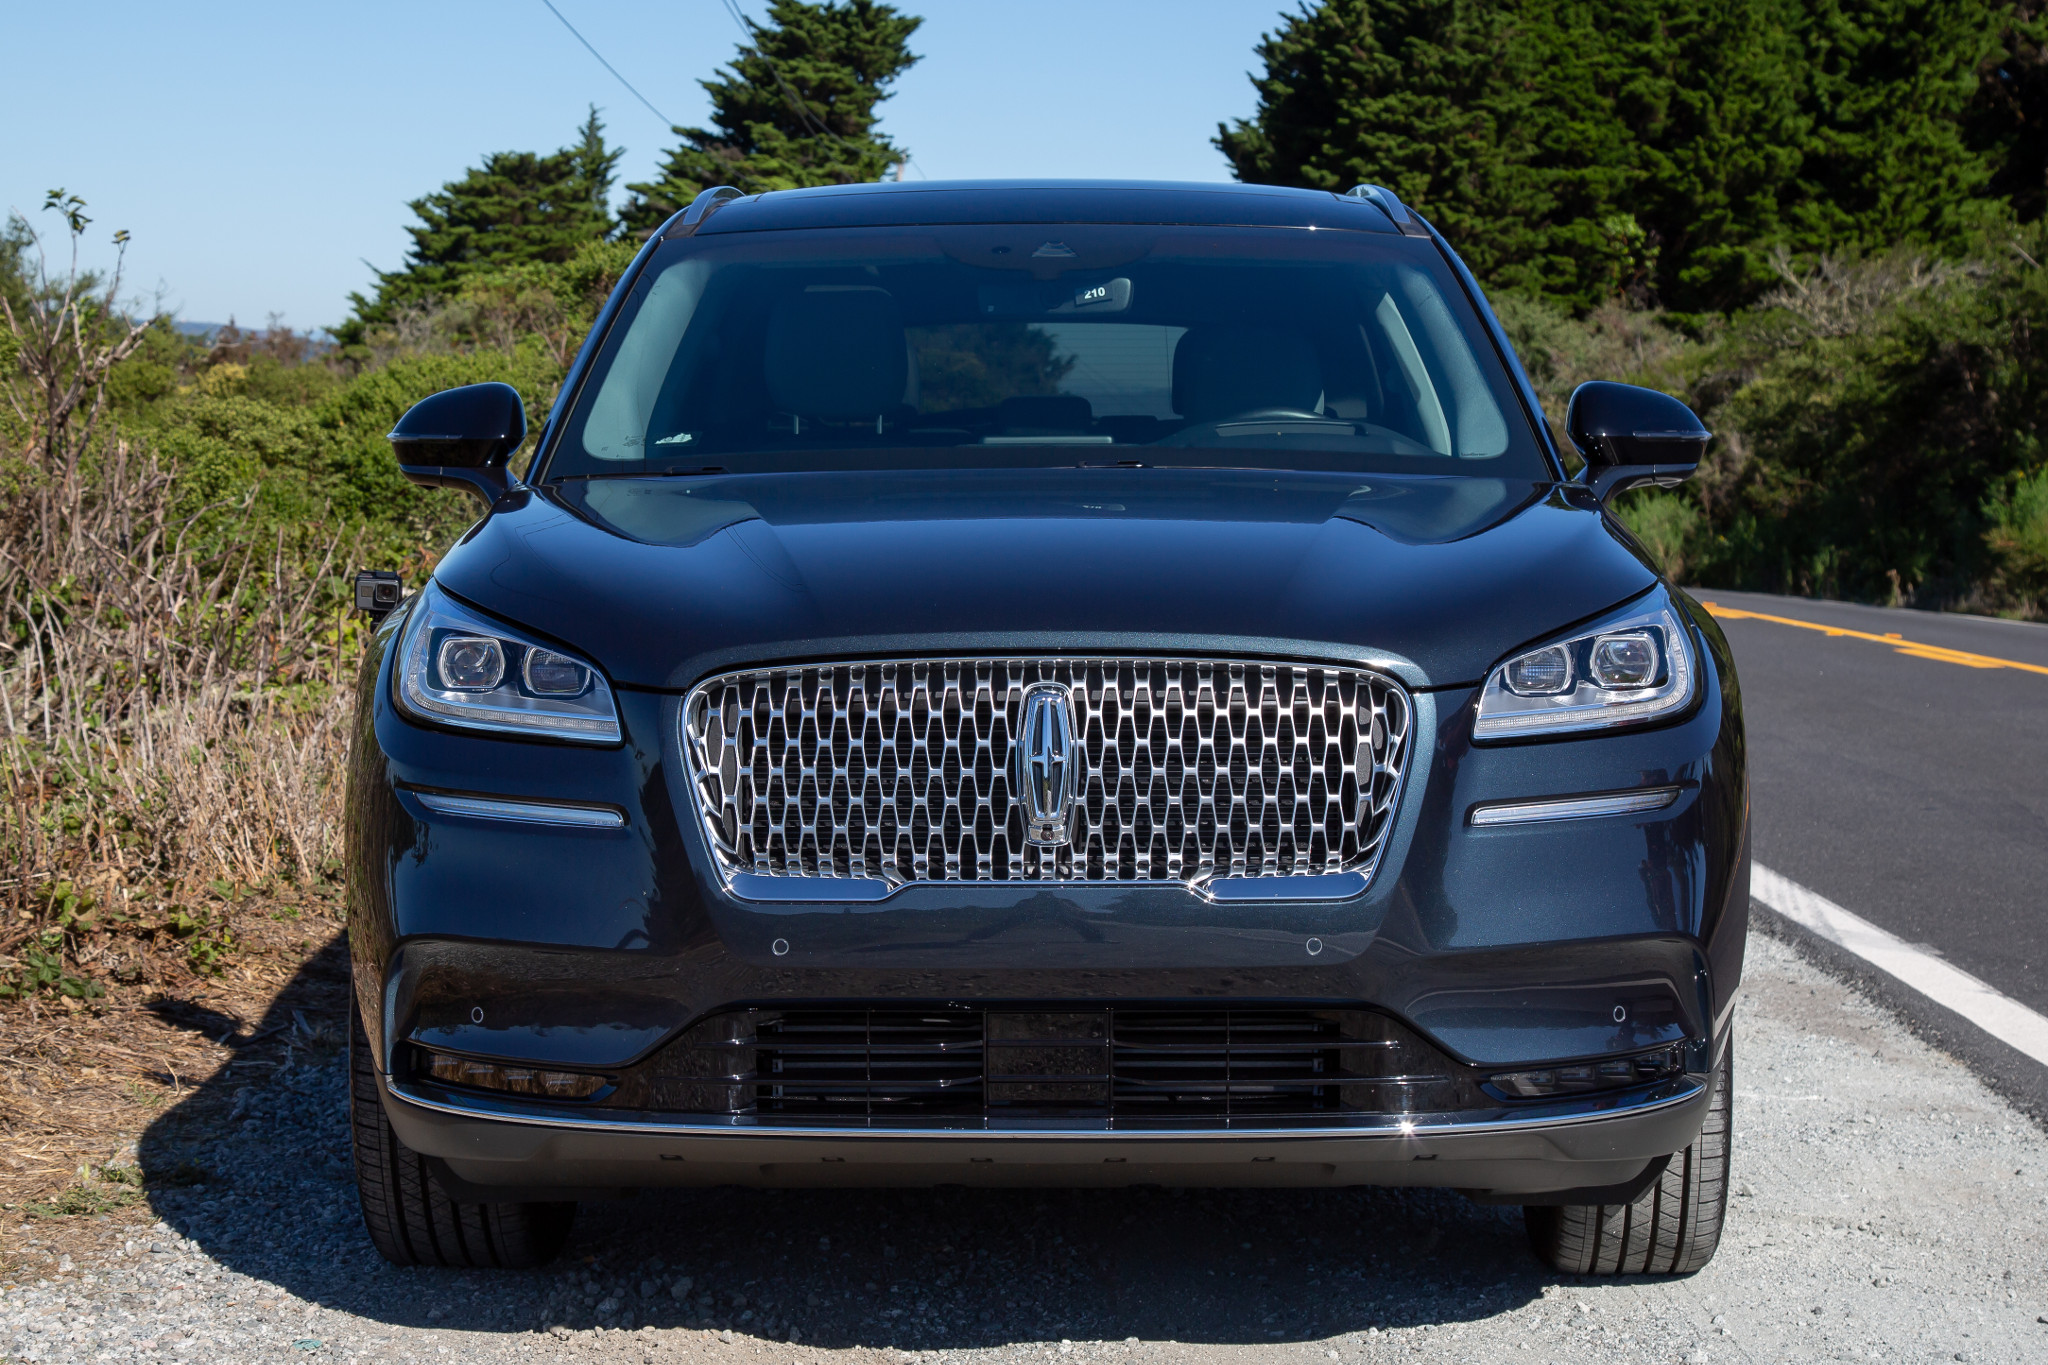 2020 Lincoln Corsair Video: Visibly Better Than the MKC